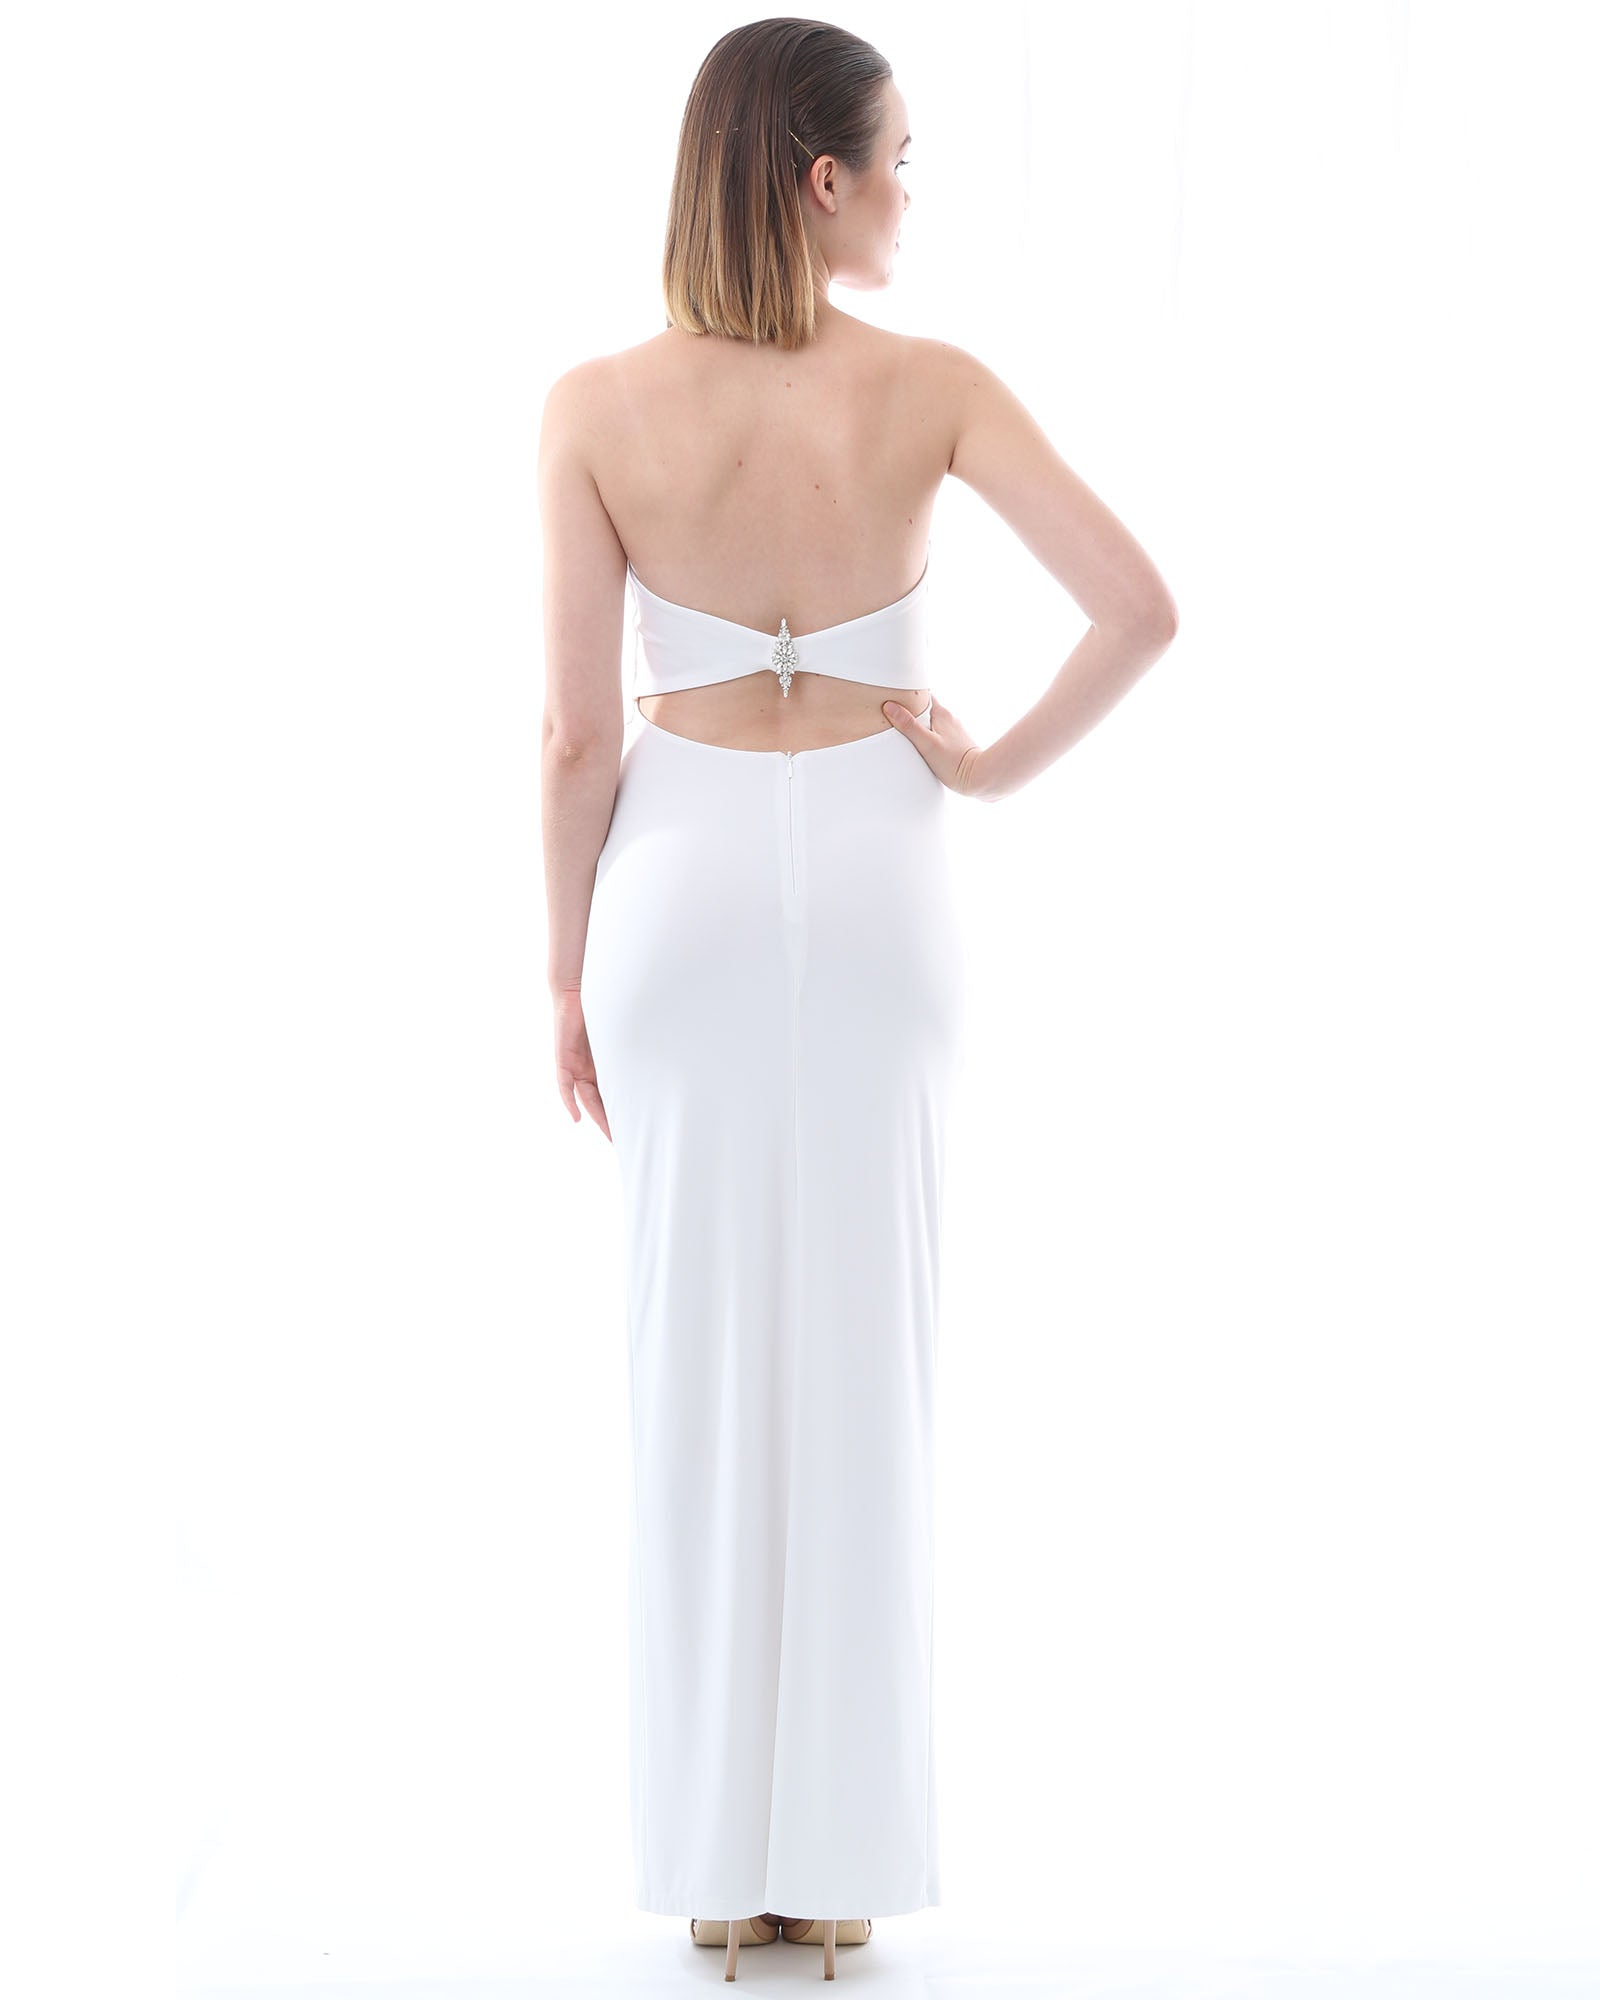 Strapless Evening Dress - White